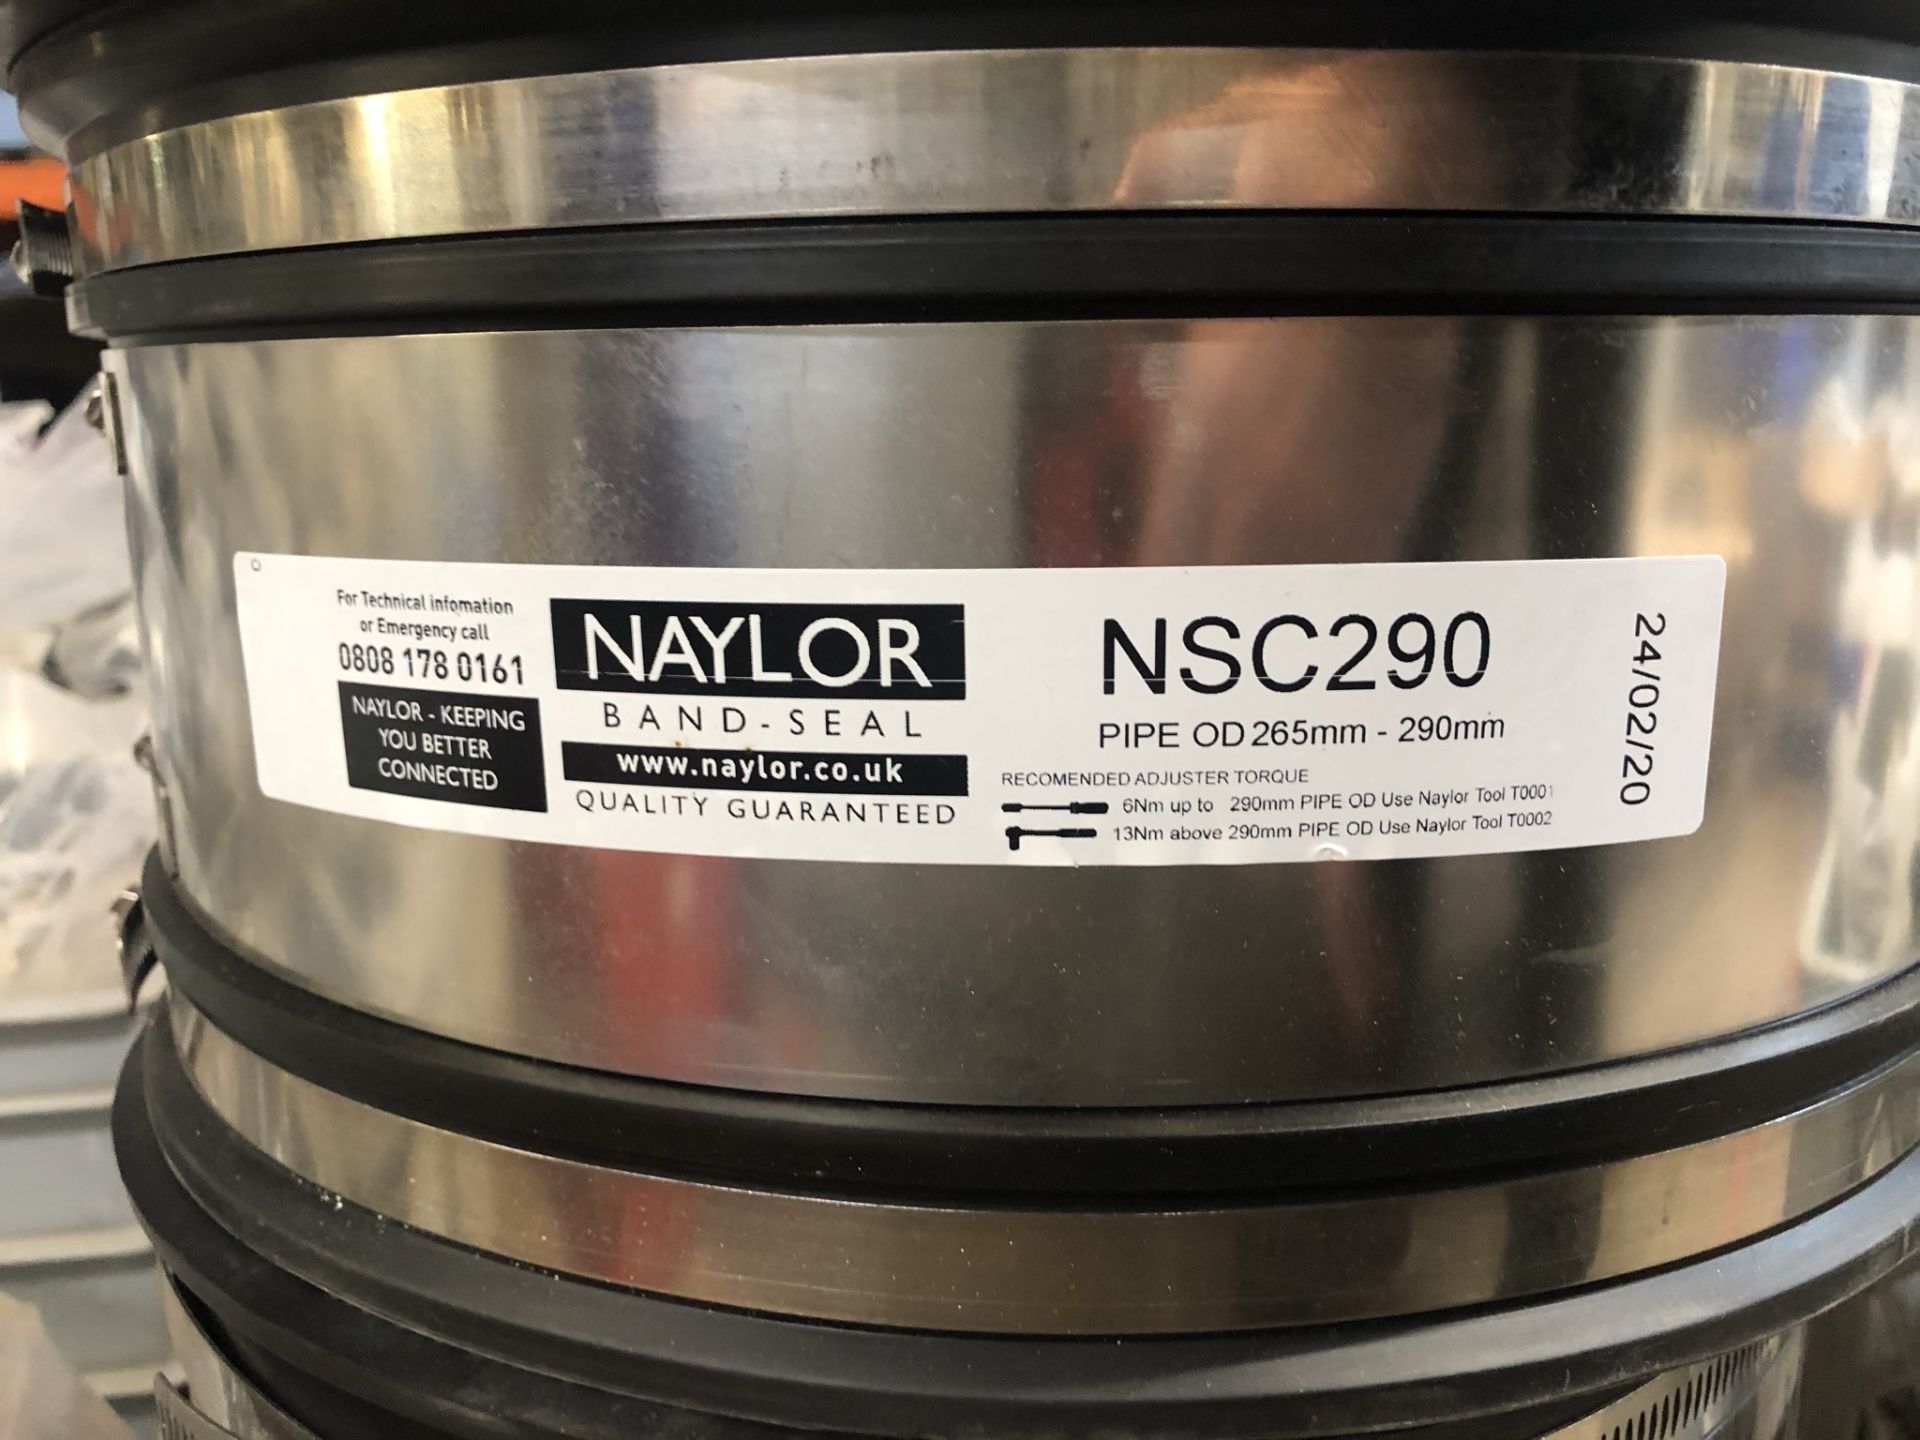 5 x Naylor NSC290 Band Seals - Pipe OD 265mm-290mm - Image 3 of 3